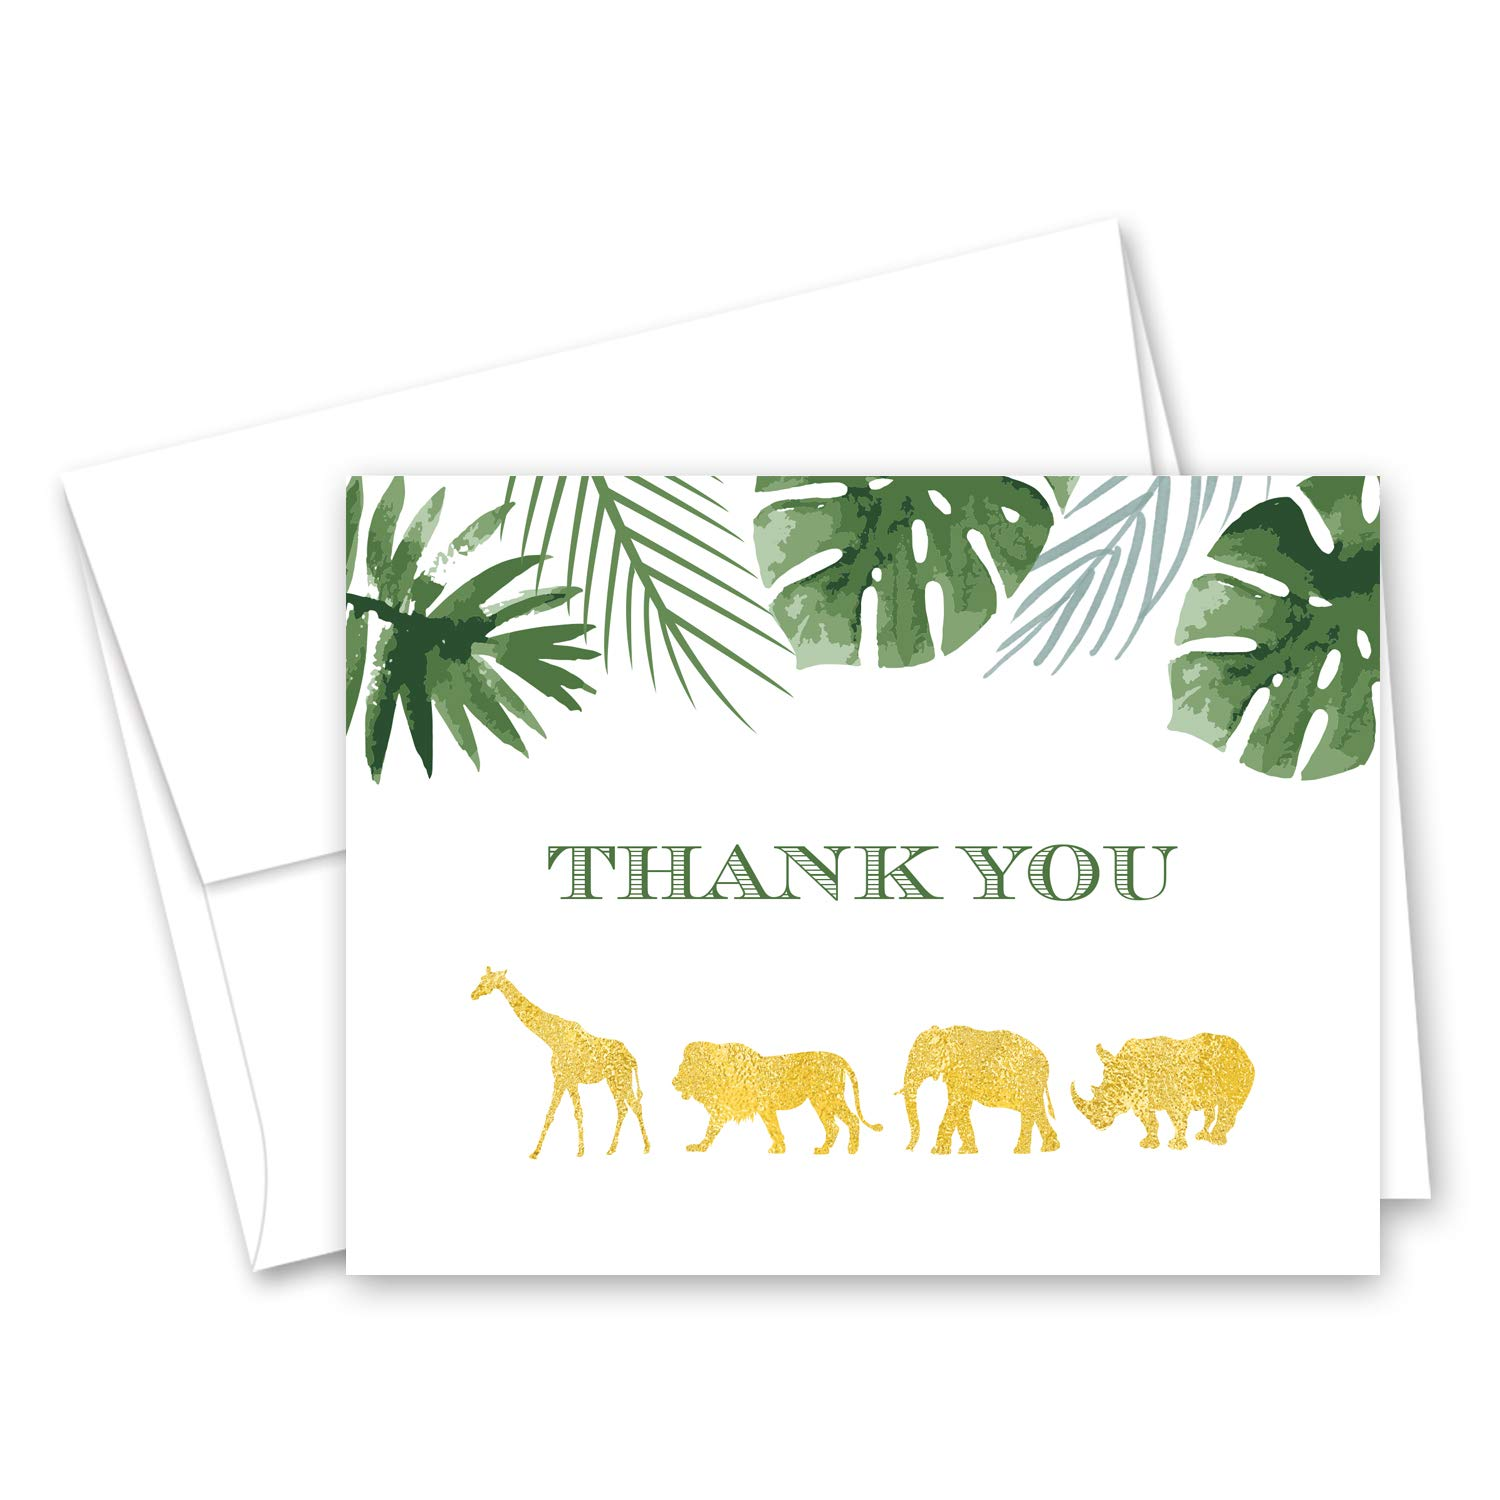 InvitationHouse Gold Safari Palm Leaves Thank You Cards and Envelopes - Set of 50 by InvitationHouse